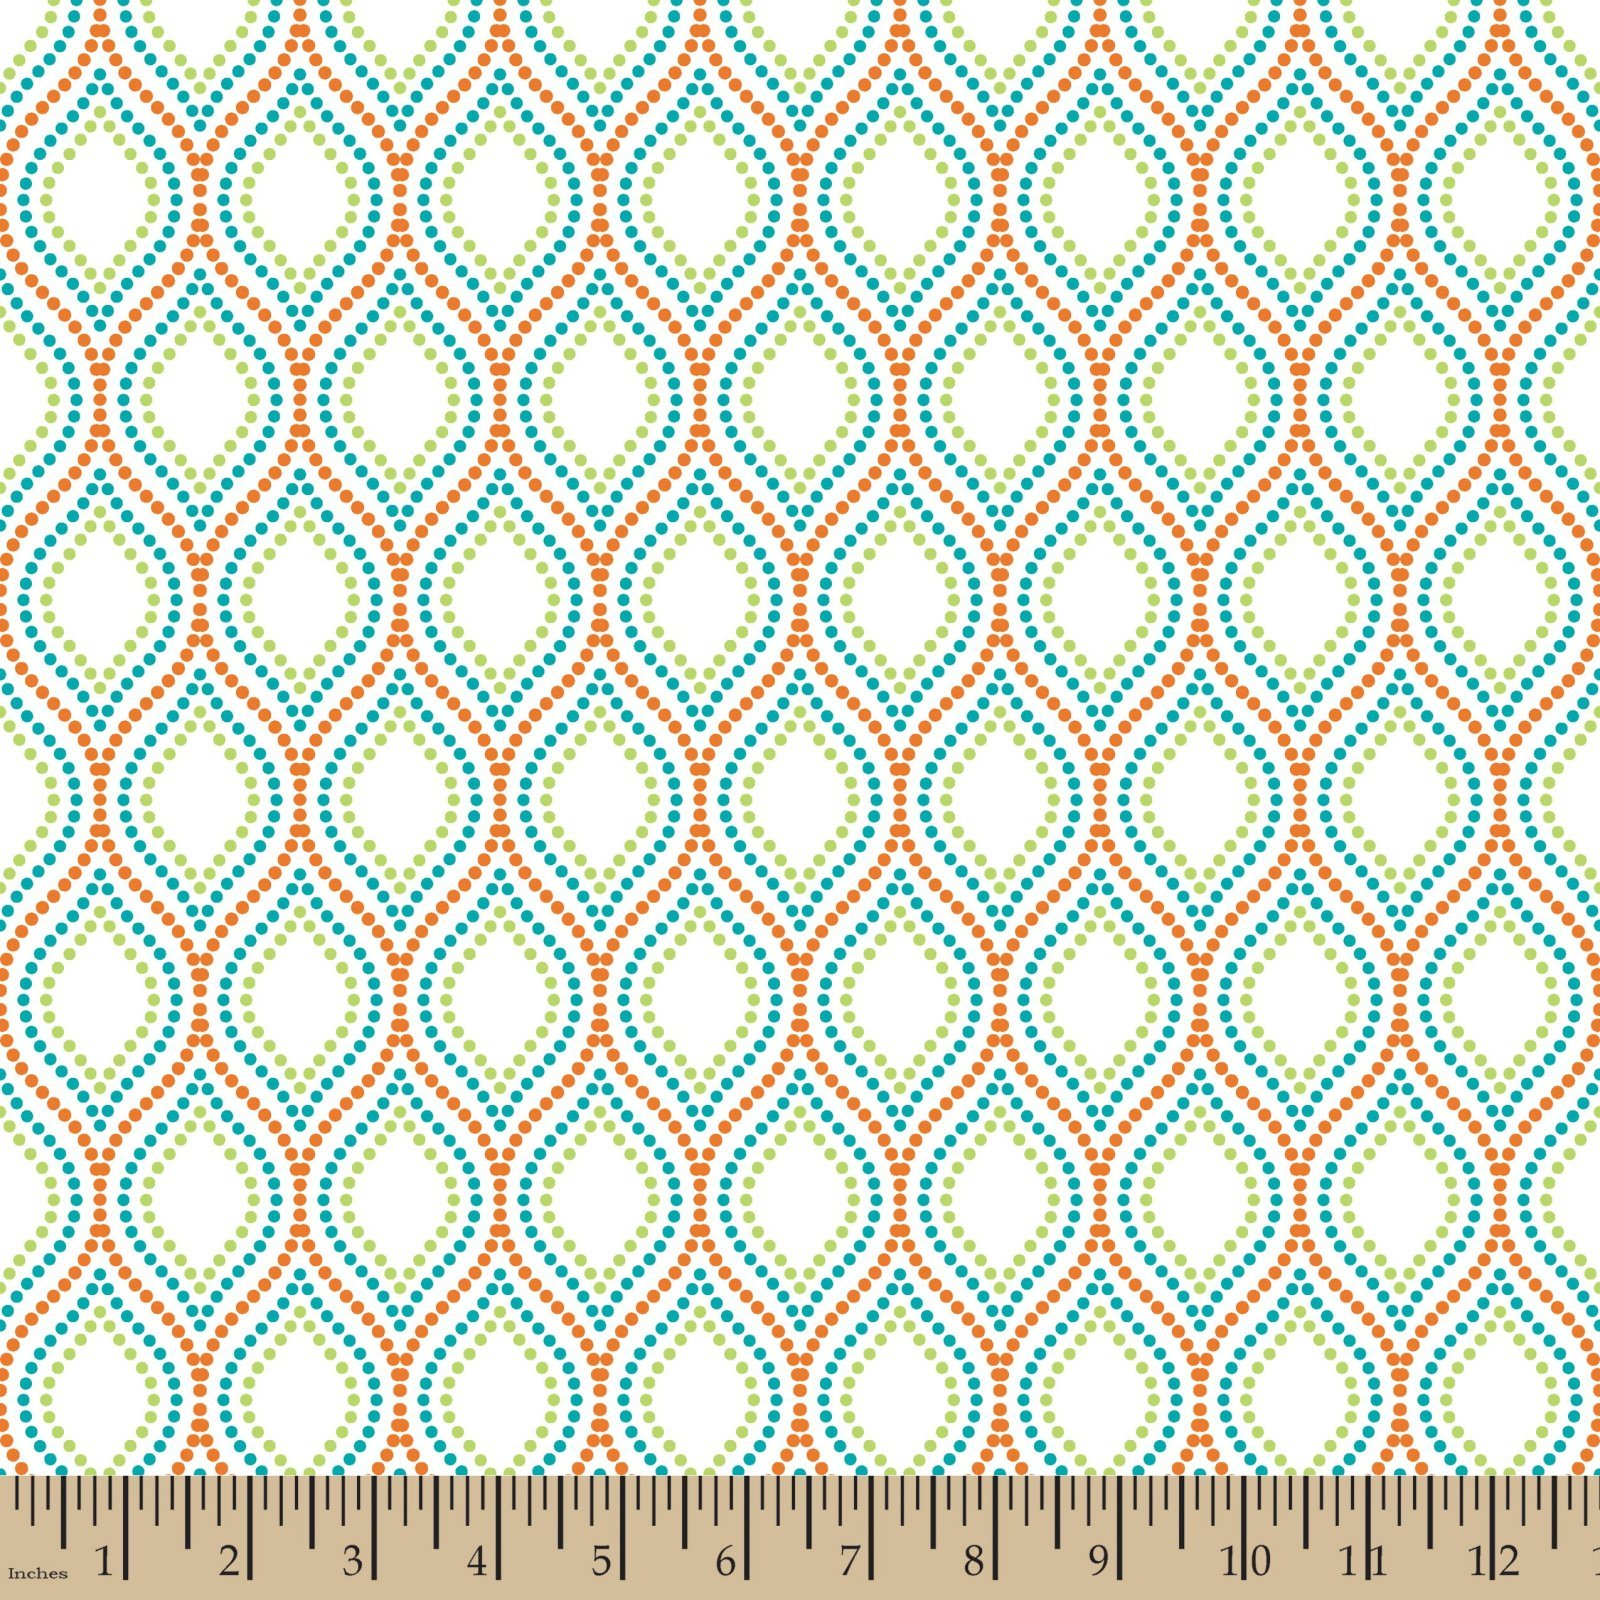 Patrick Lose BoHo Happy Dotted Ogee White